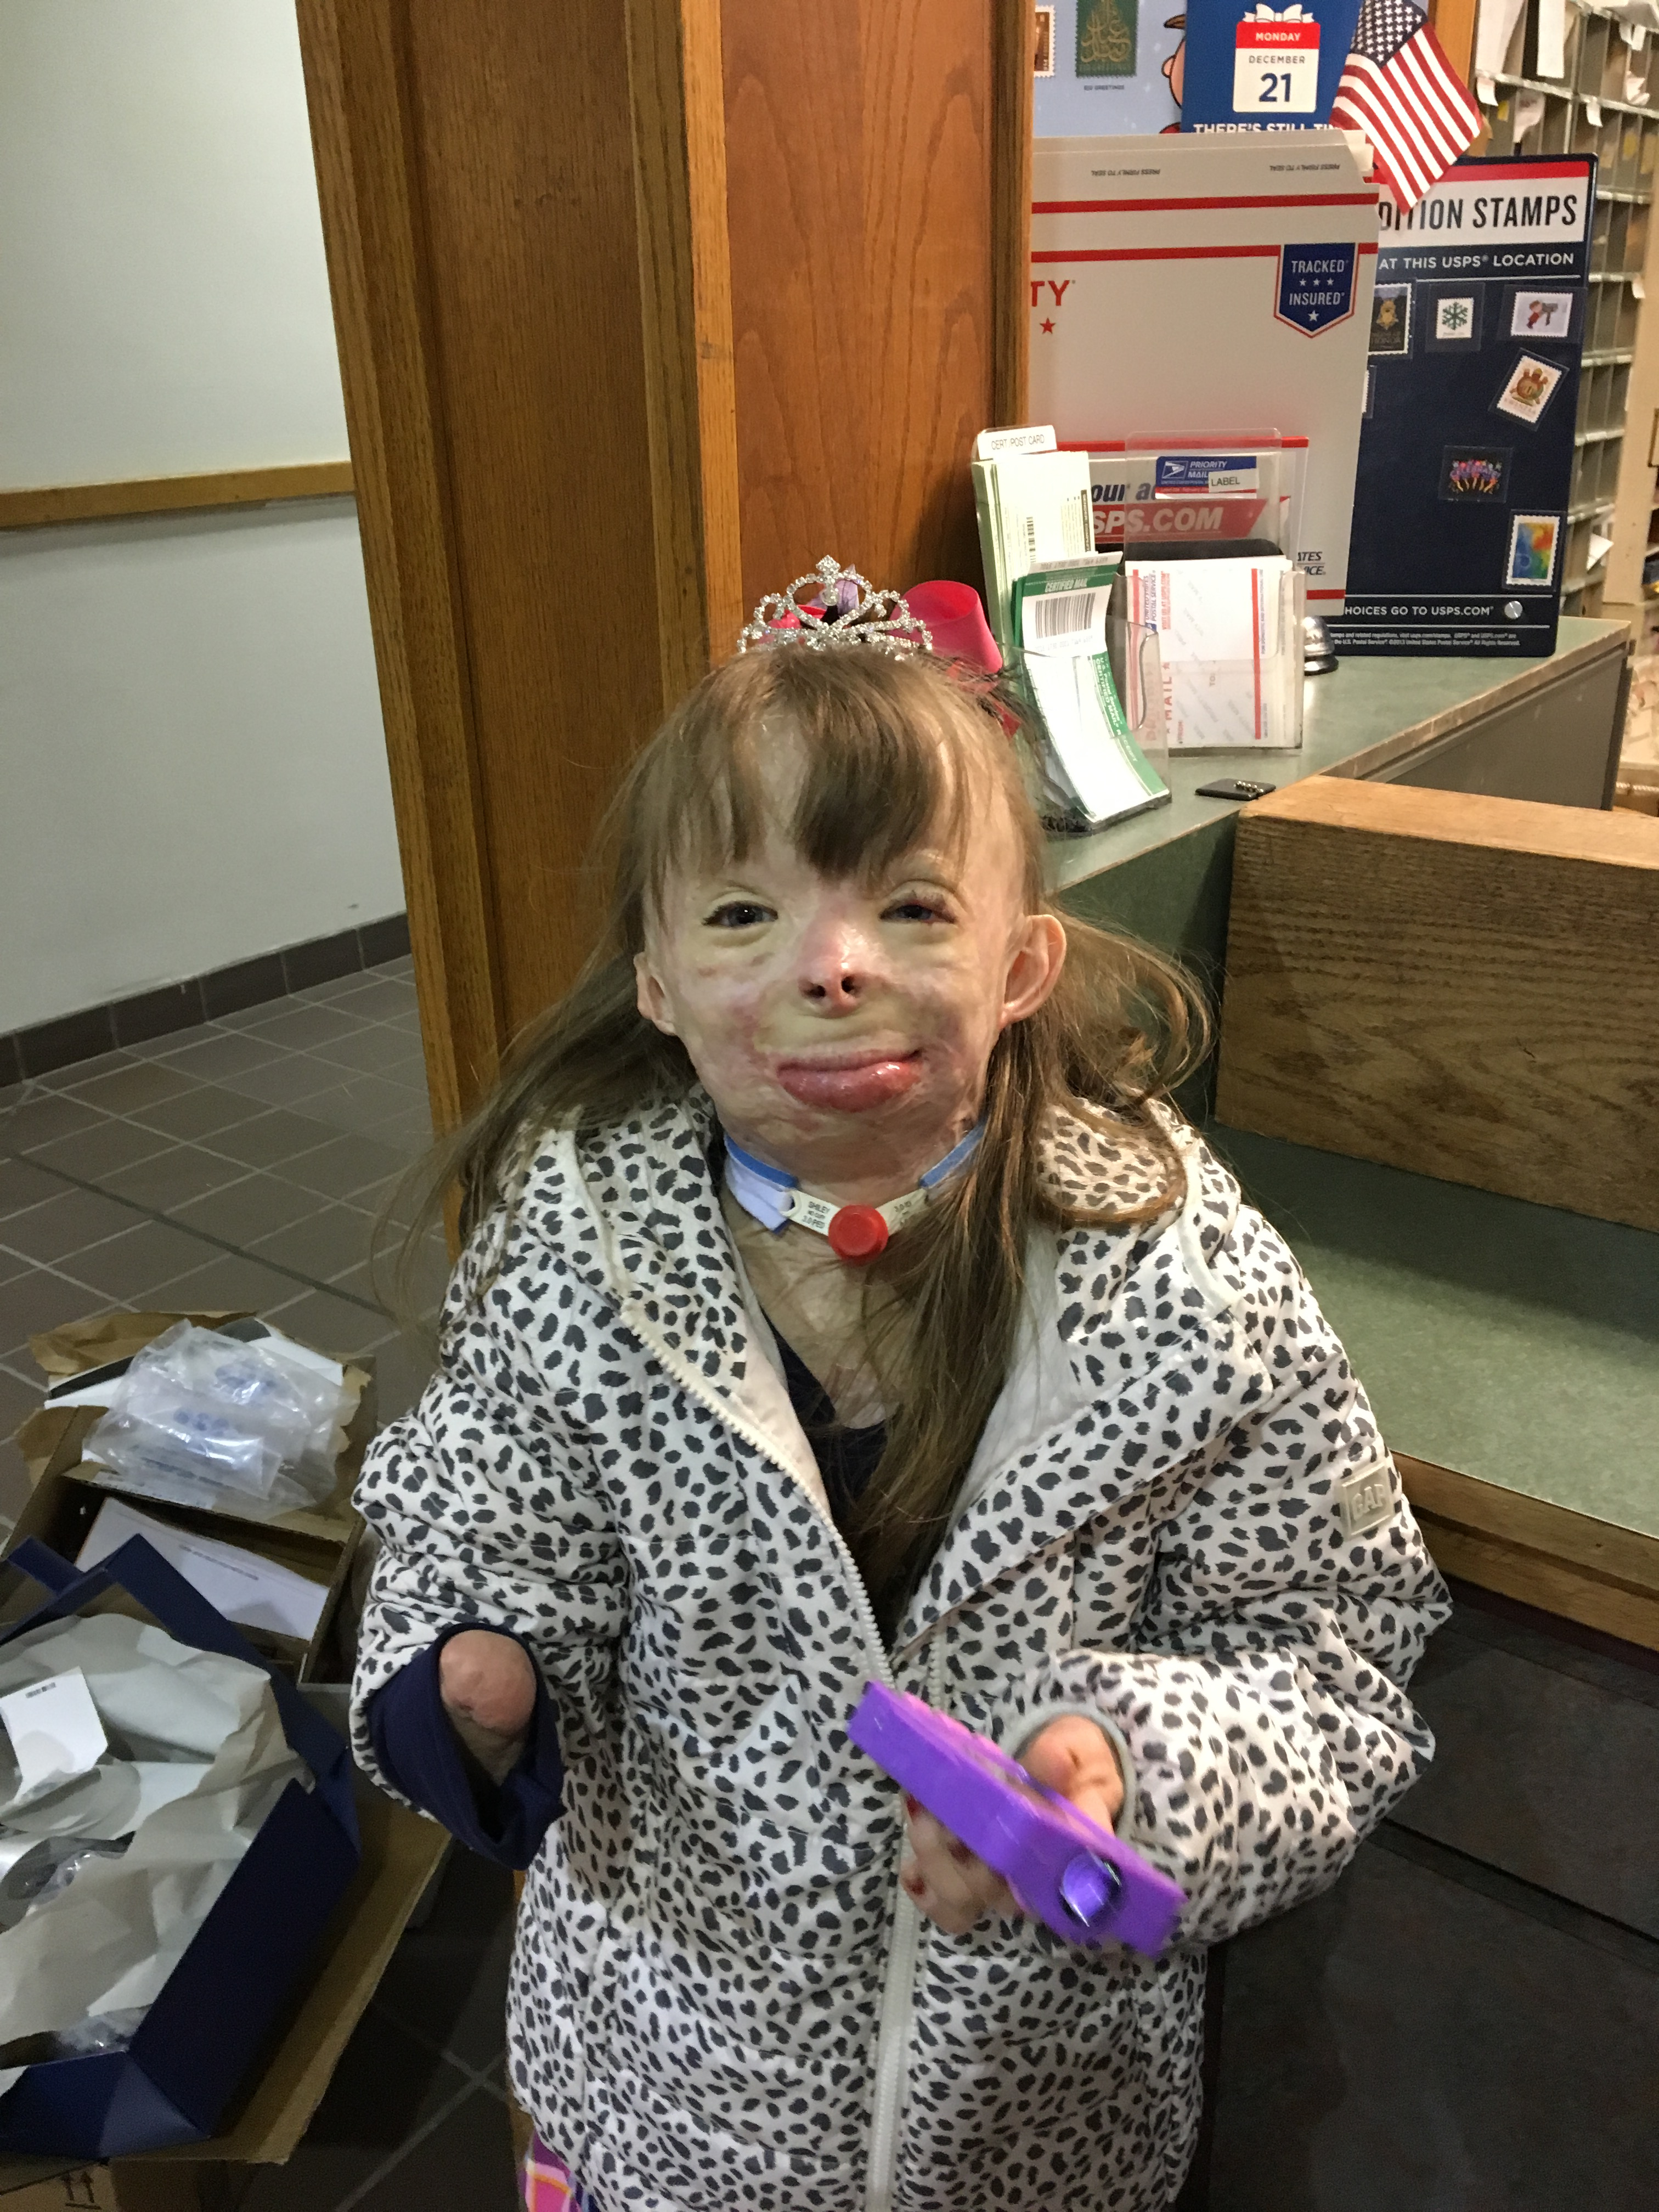 Christmas comes early to 8-year-old disfigured by fire | WTOP